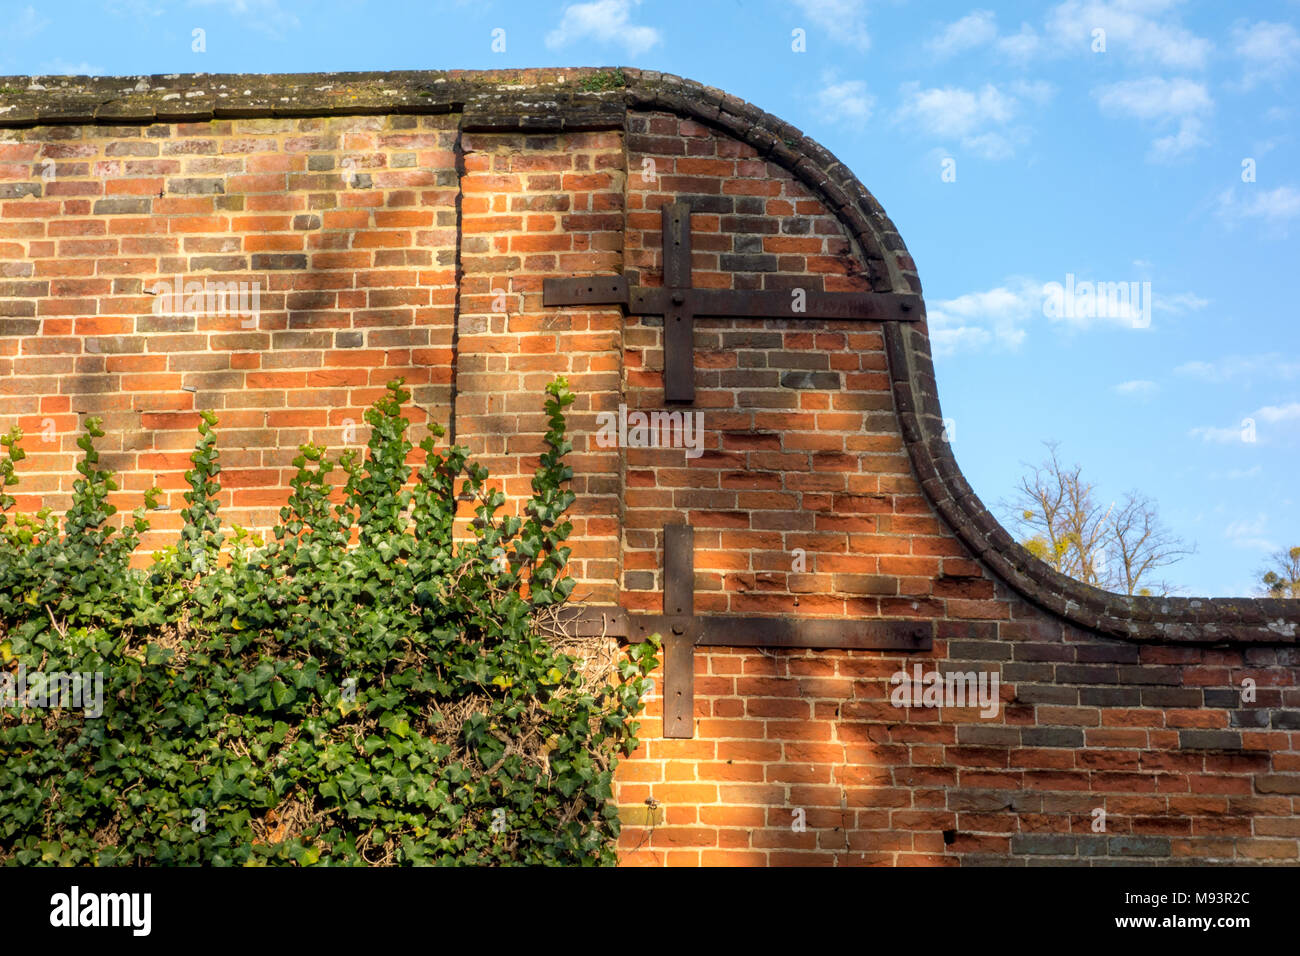 Old brick wall with metal retaining supports - Stock Image